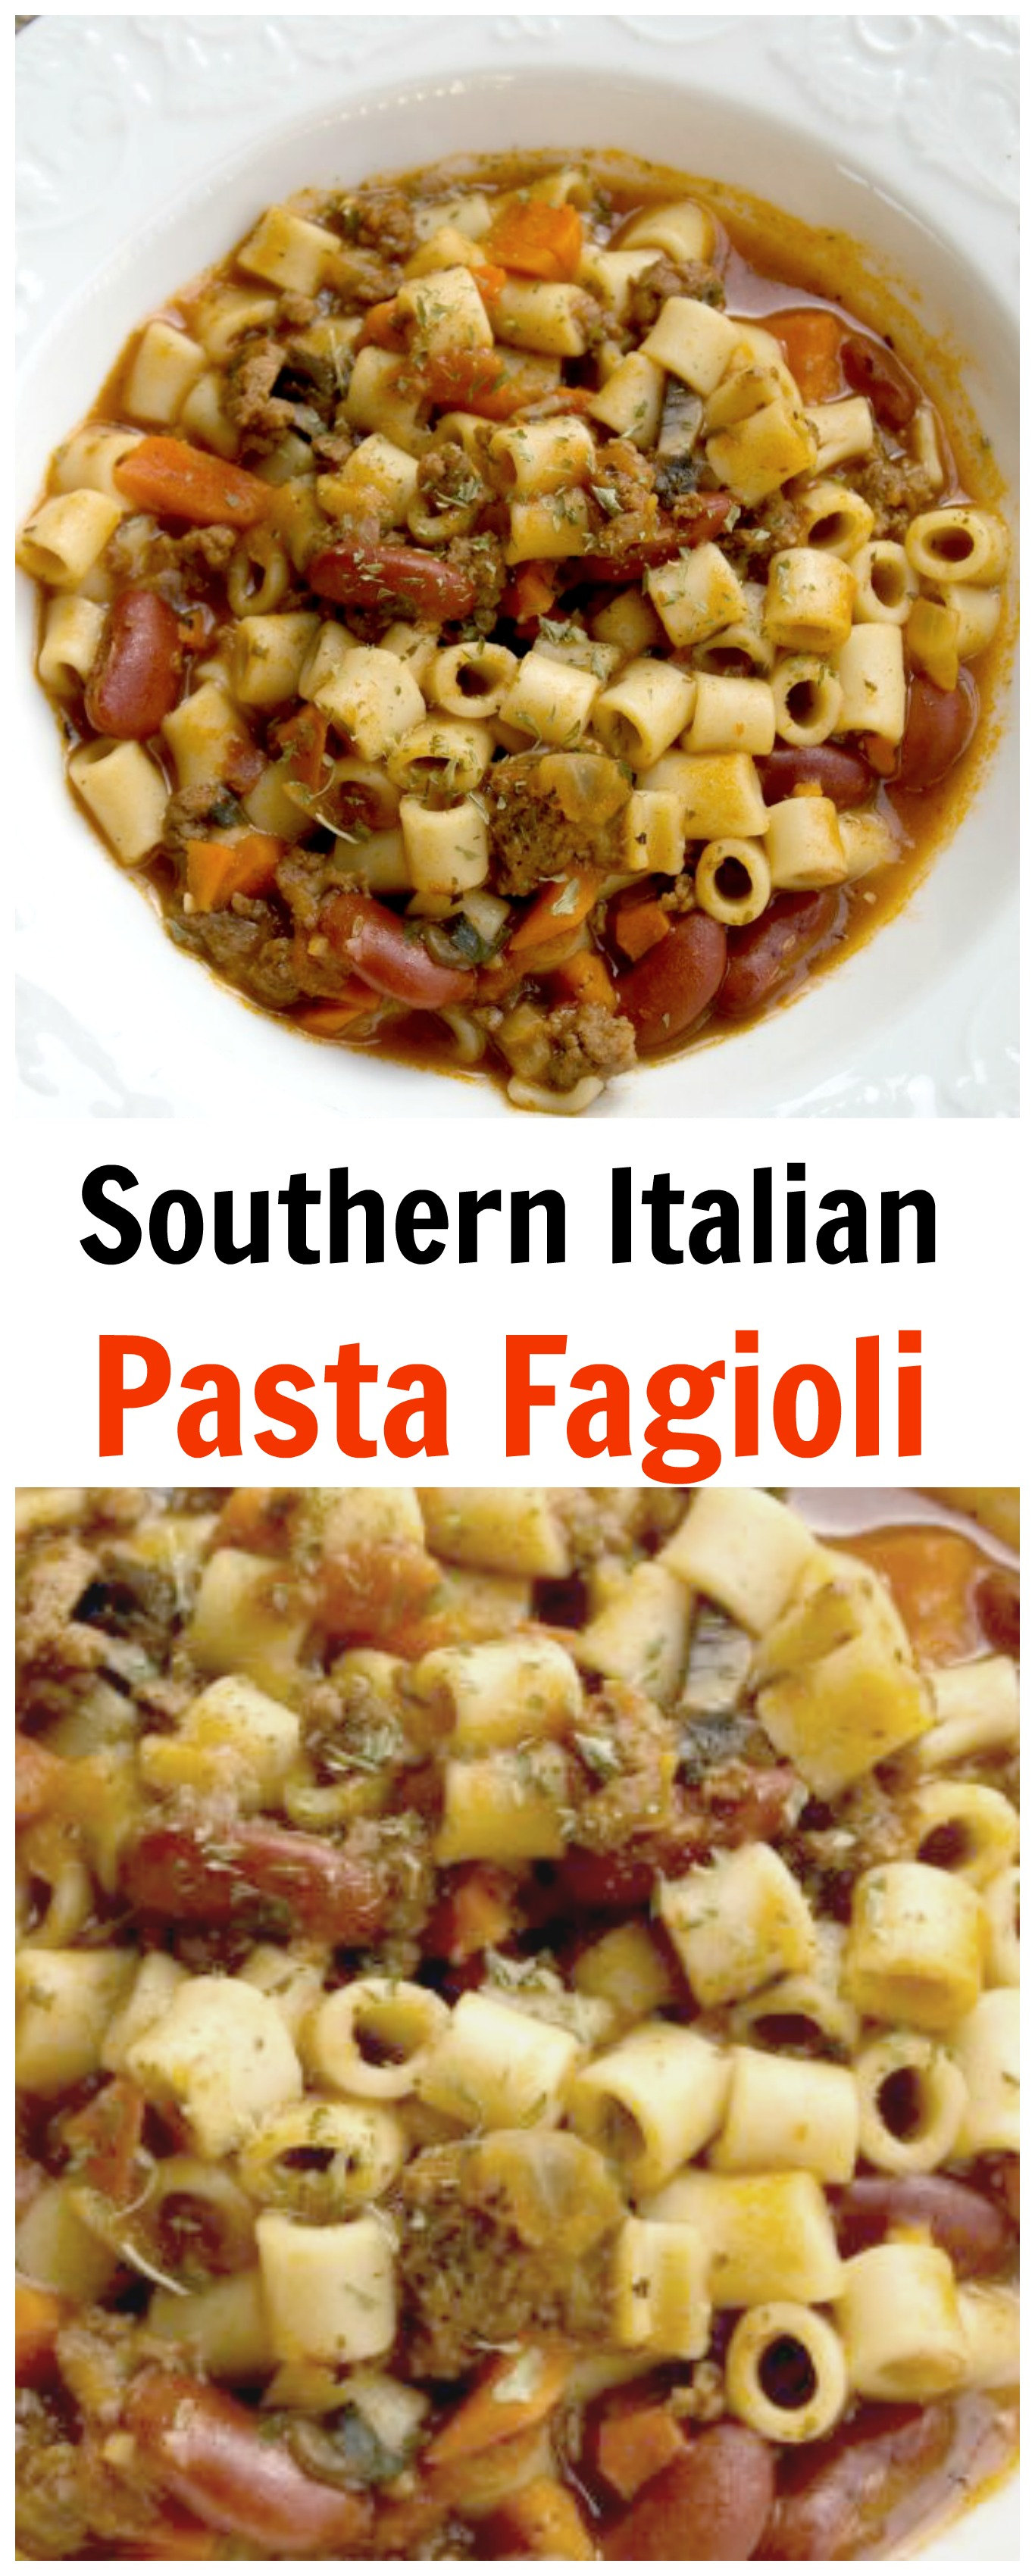 Southern Italian Pasta-Super Easy Italian soup recipe that makes a quick and delicious dinner any night of the week. It's a filling soup that is kid friendly. Pair with a slice of italian bread for the perfect comfort meal.